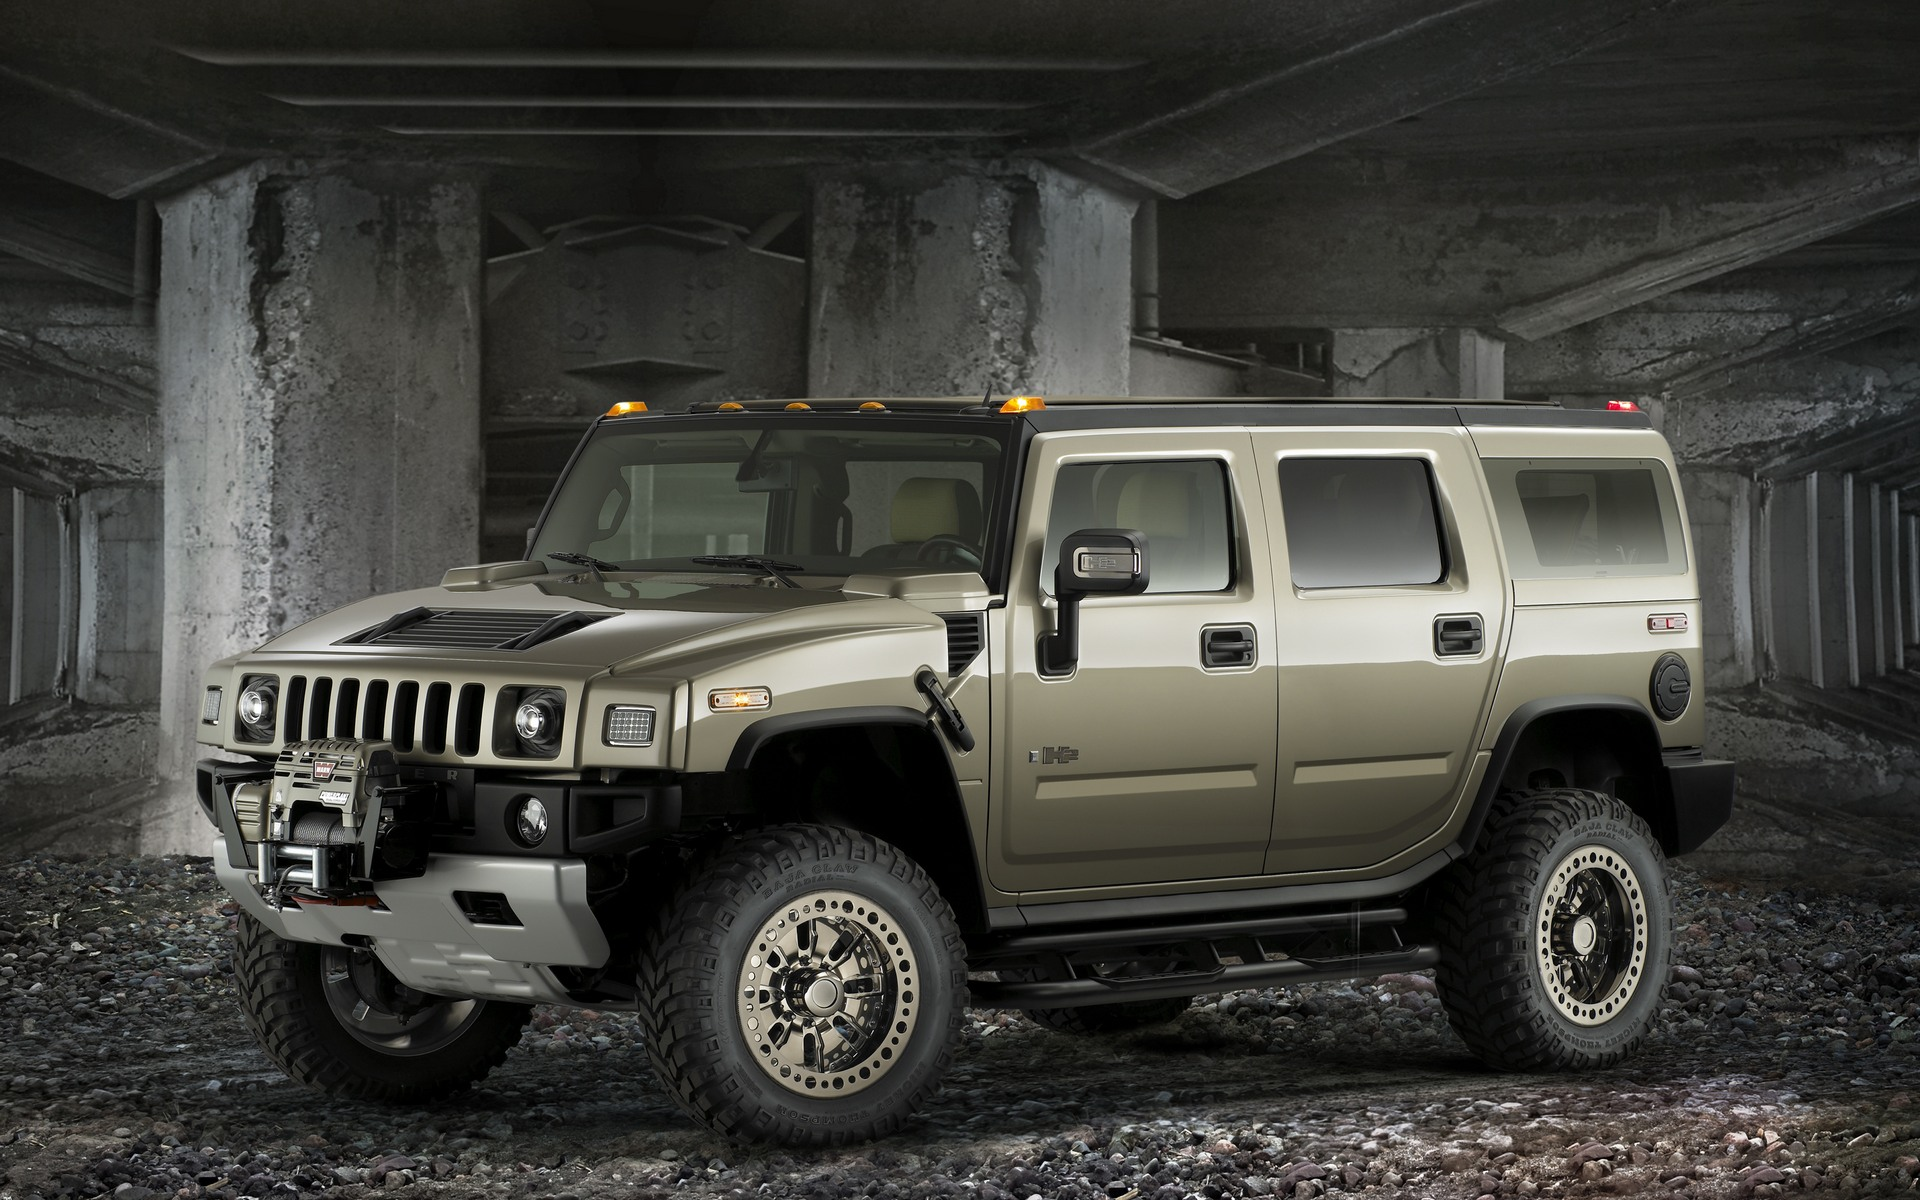 2007 Hummer H2 Safari f Road Concept History Value